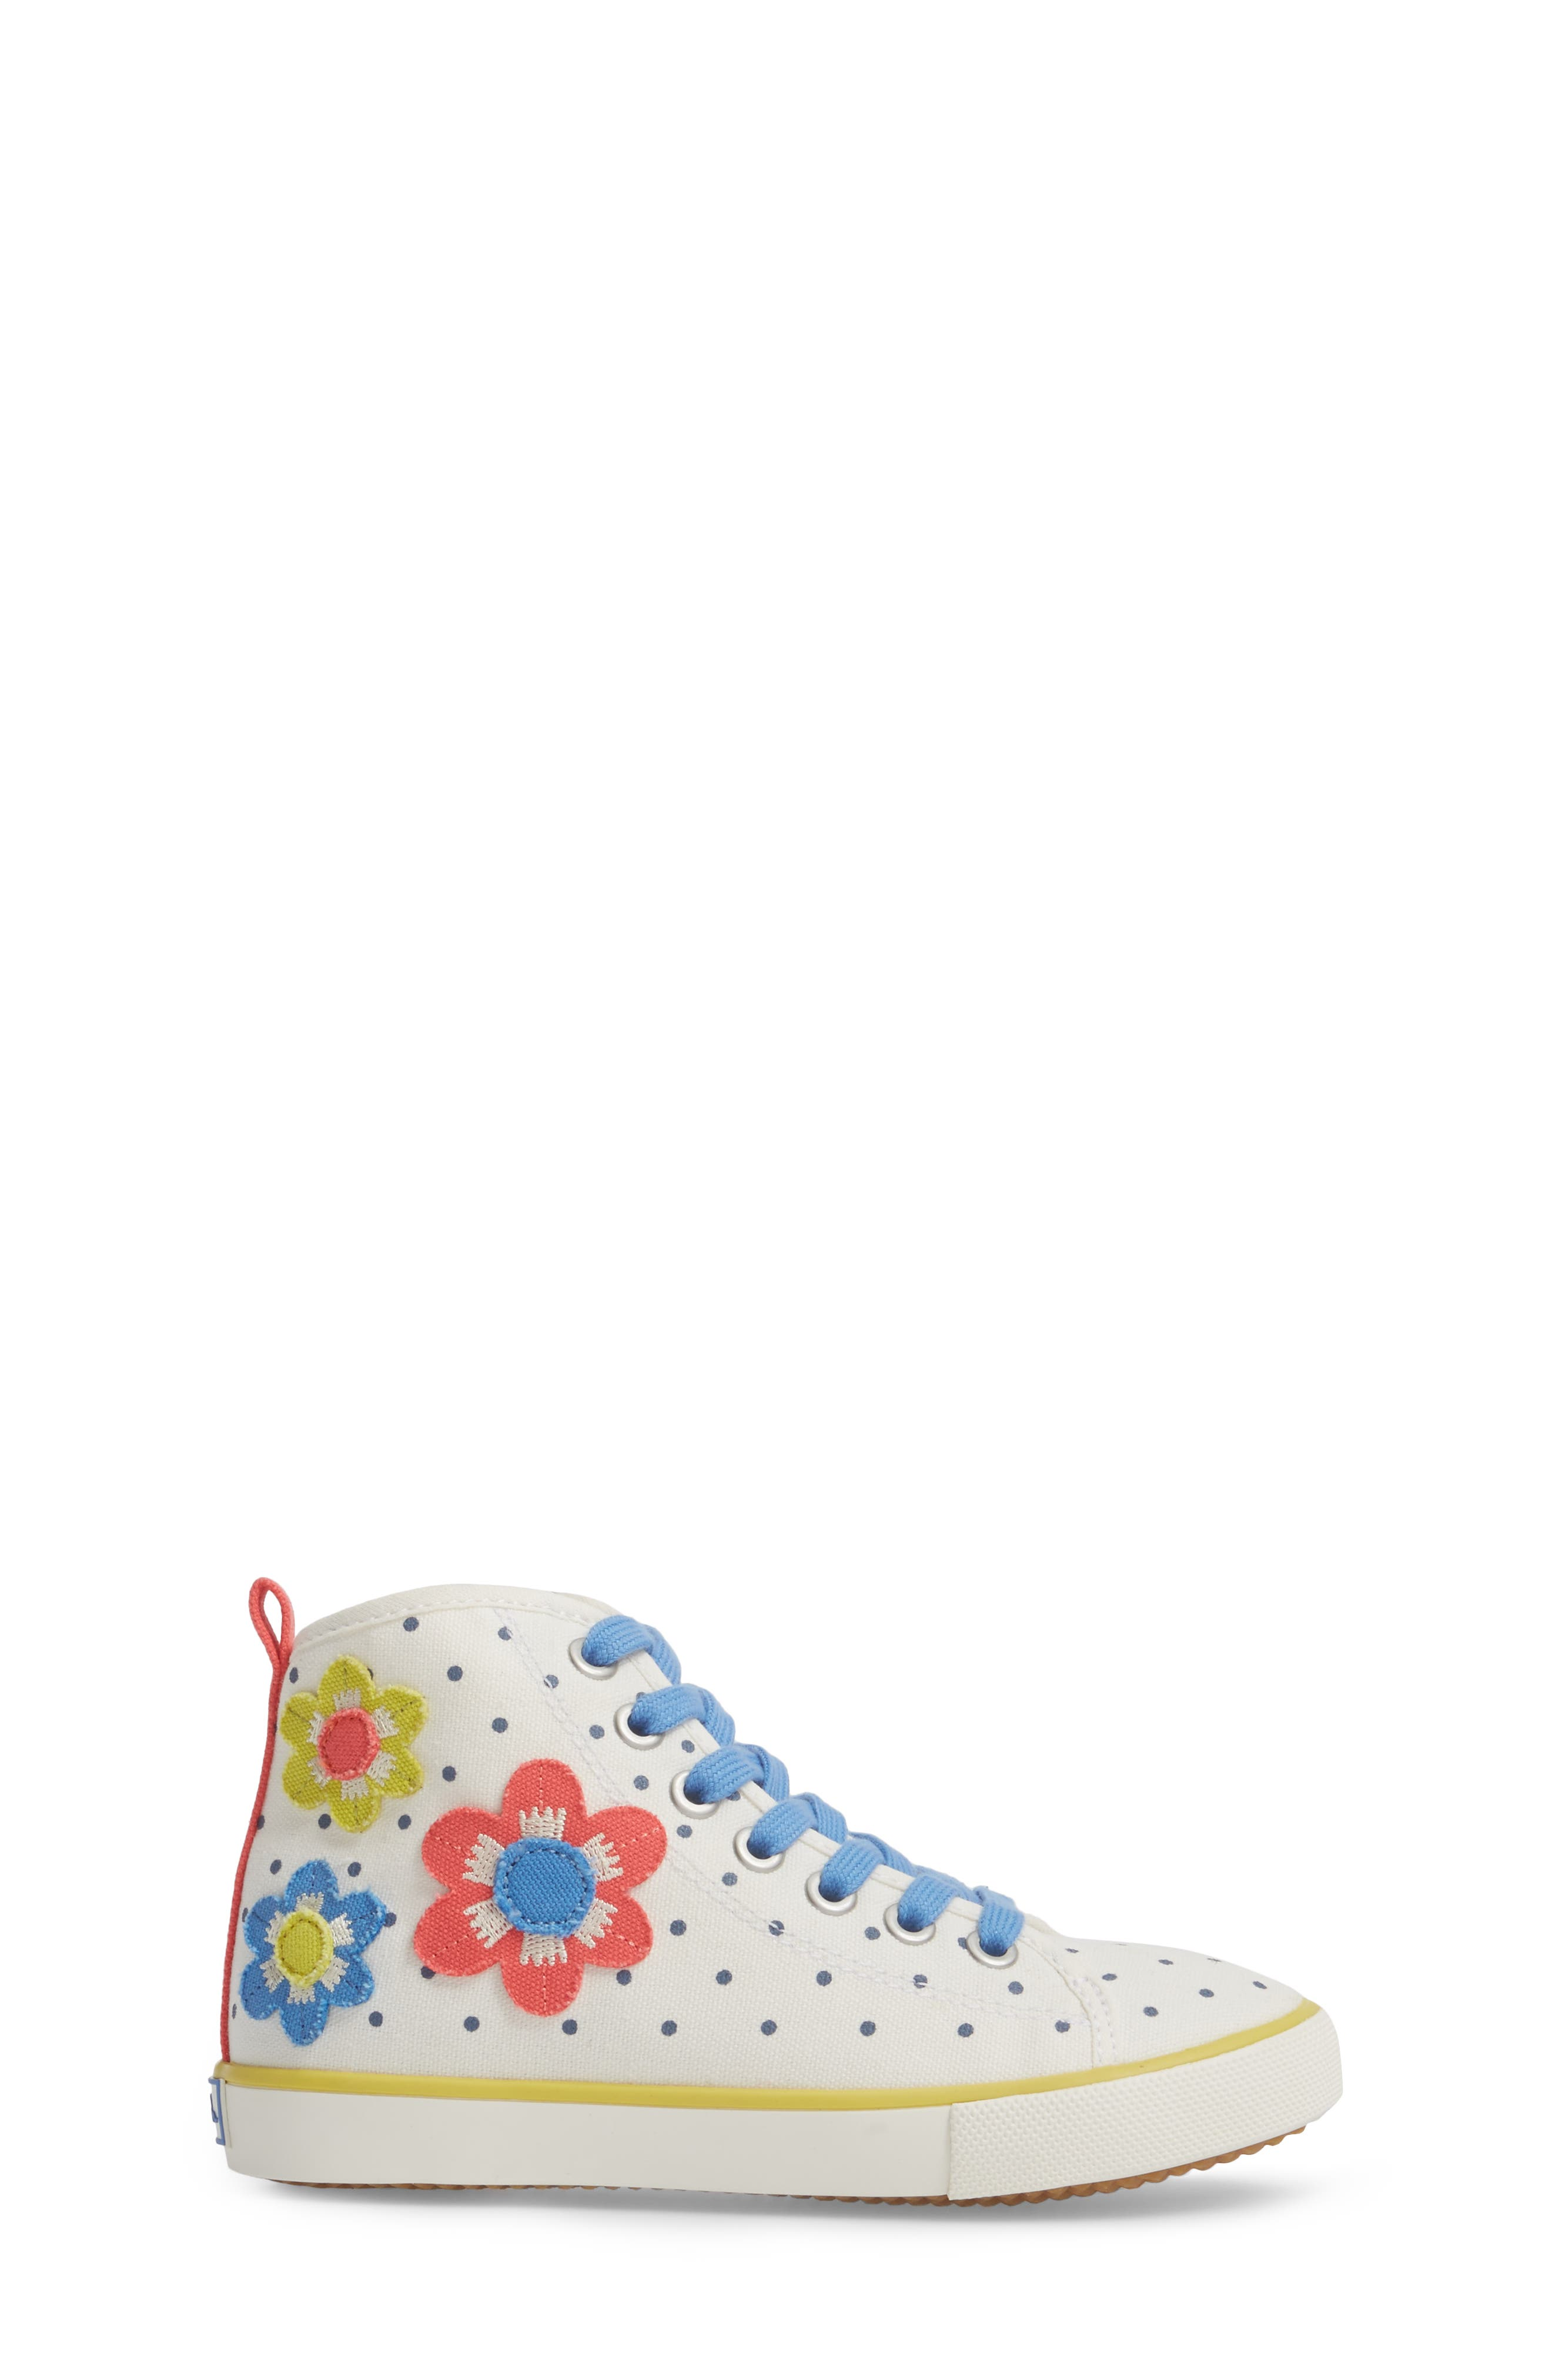 Appliqué High Top Sneaker,                             Alternate thumbnail 3, color,                             Ecru Flowers